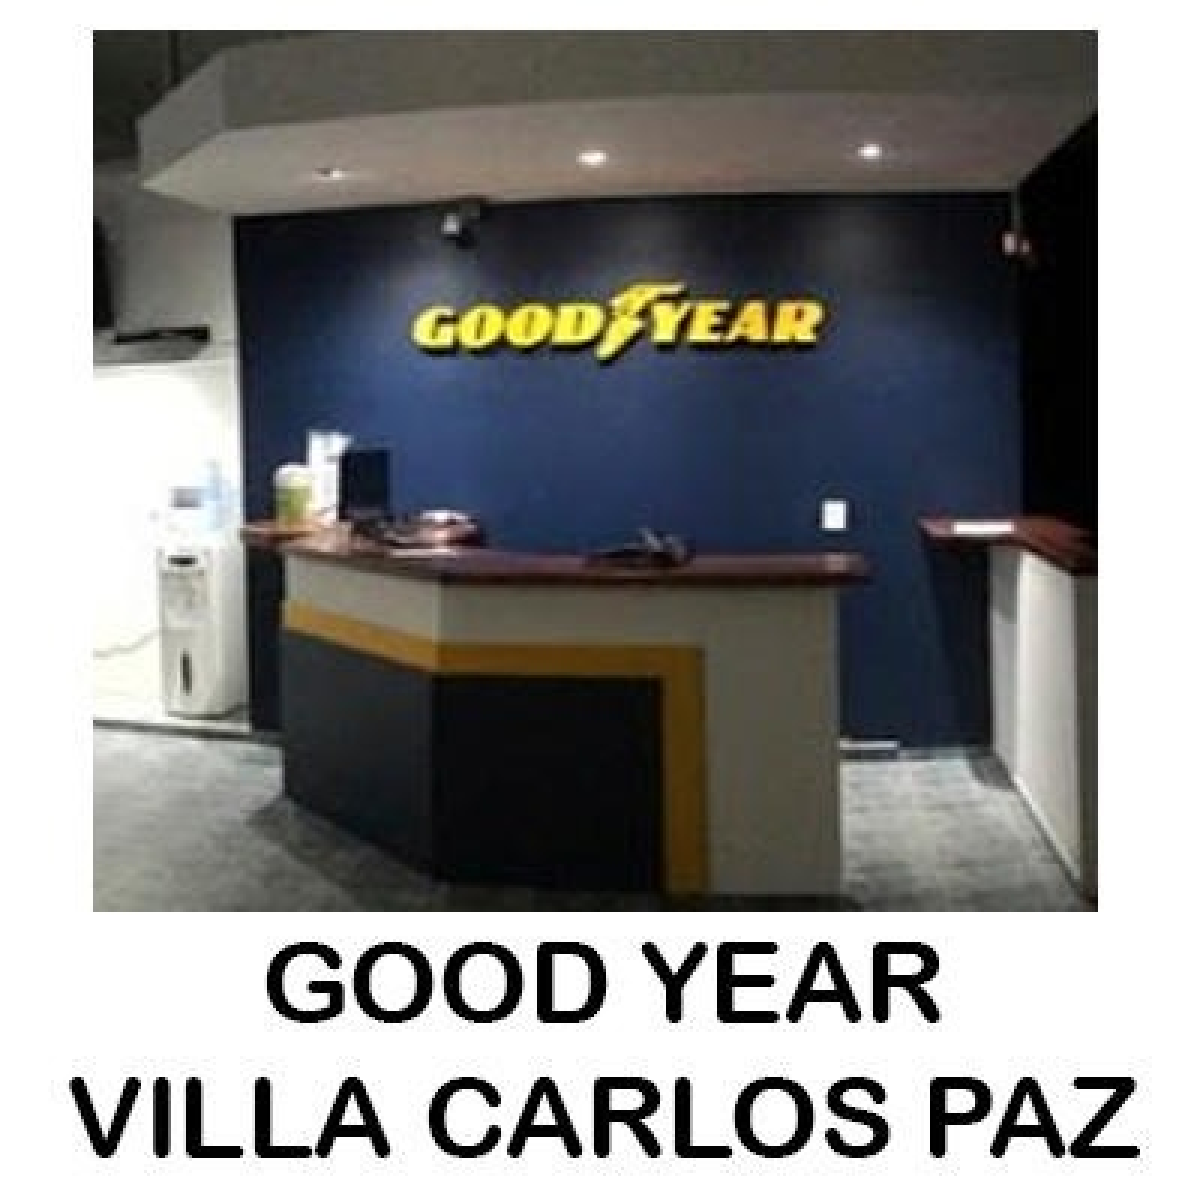 GOOD YEAR VILLA CARLOS PAZ